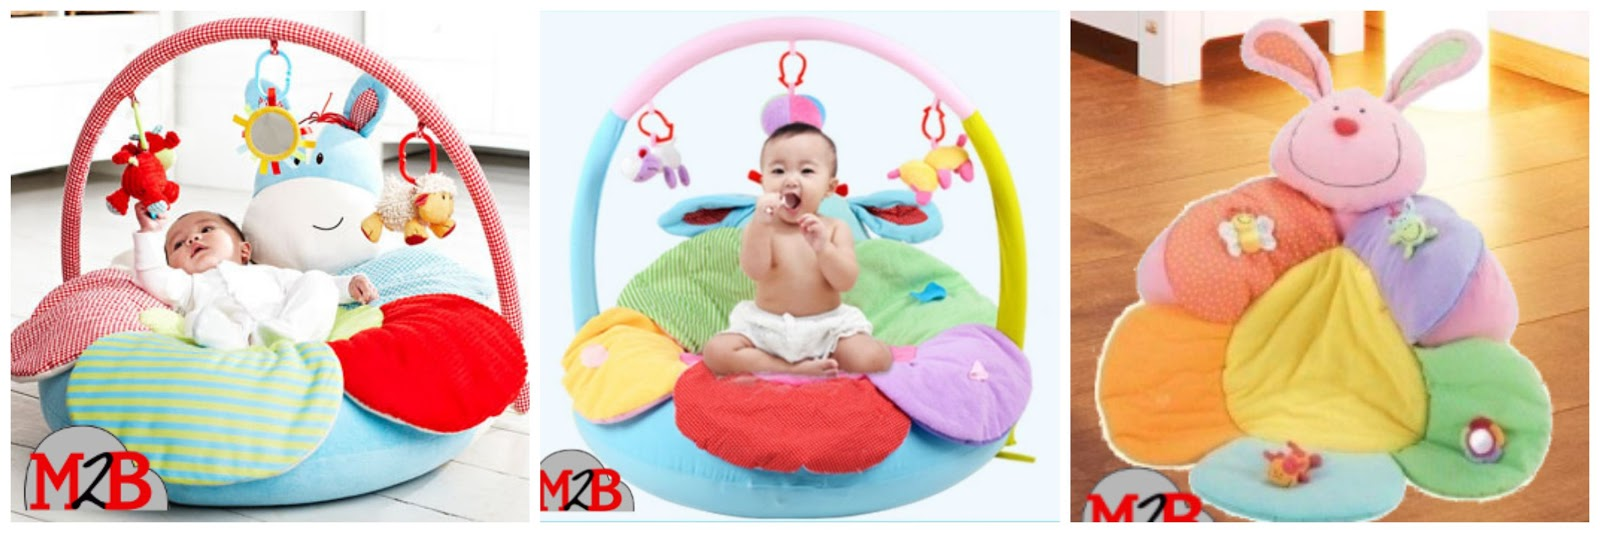 M2B INFLATABLE ONLINE SHOP: CATEGORY: BABIES AND KIDS